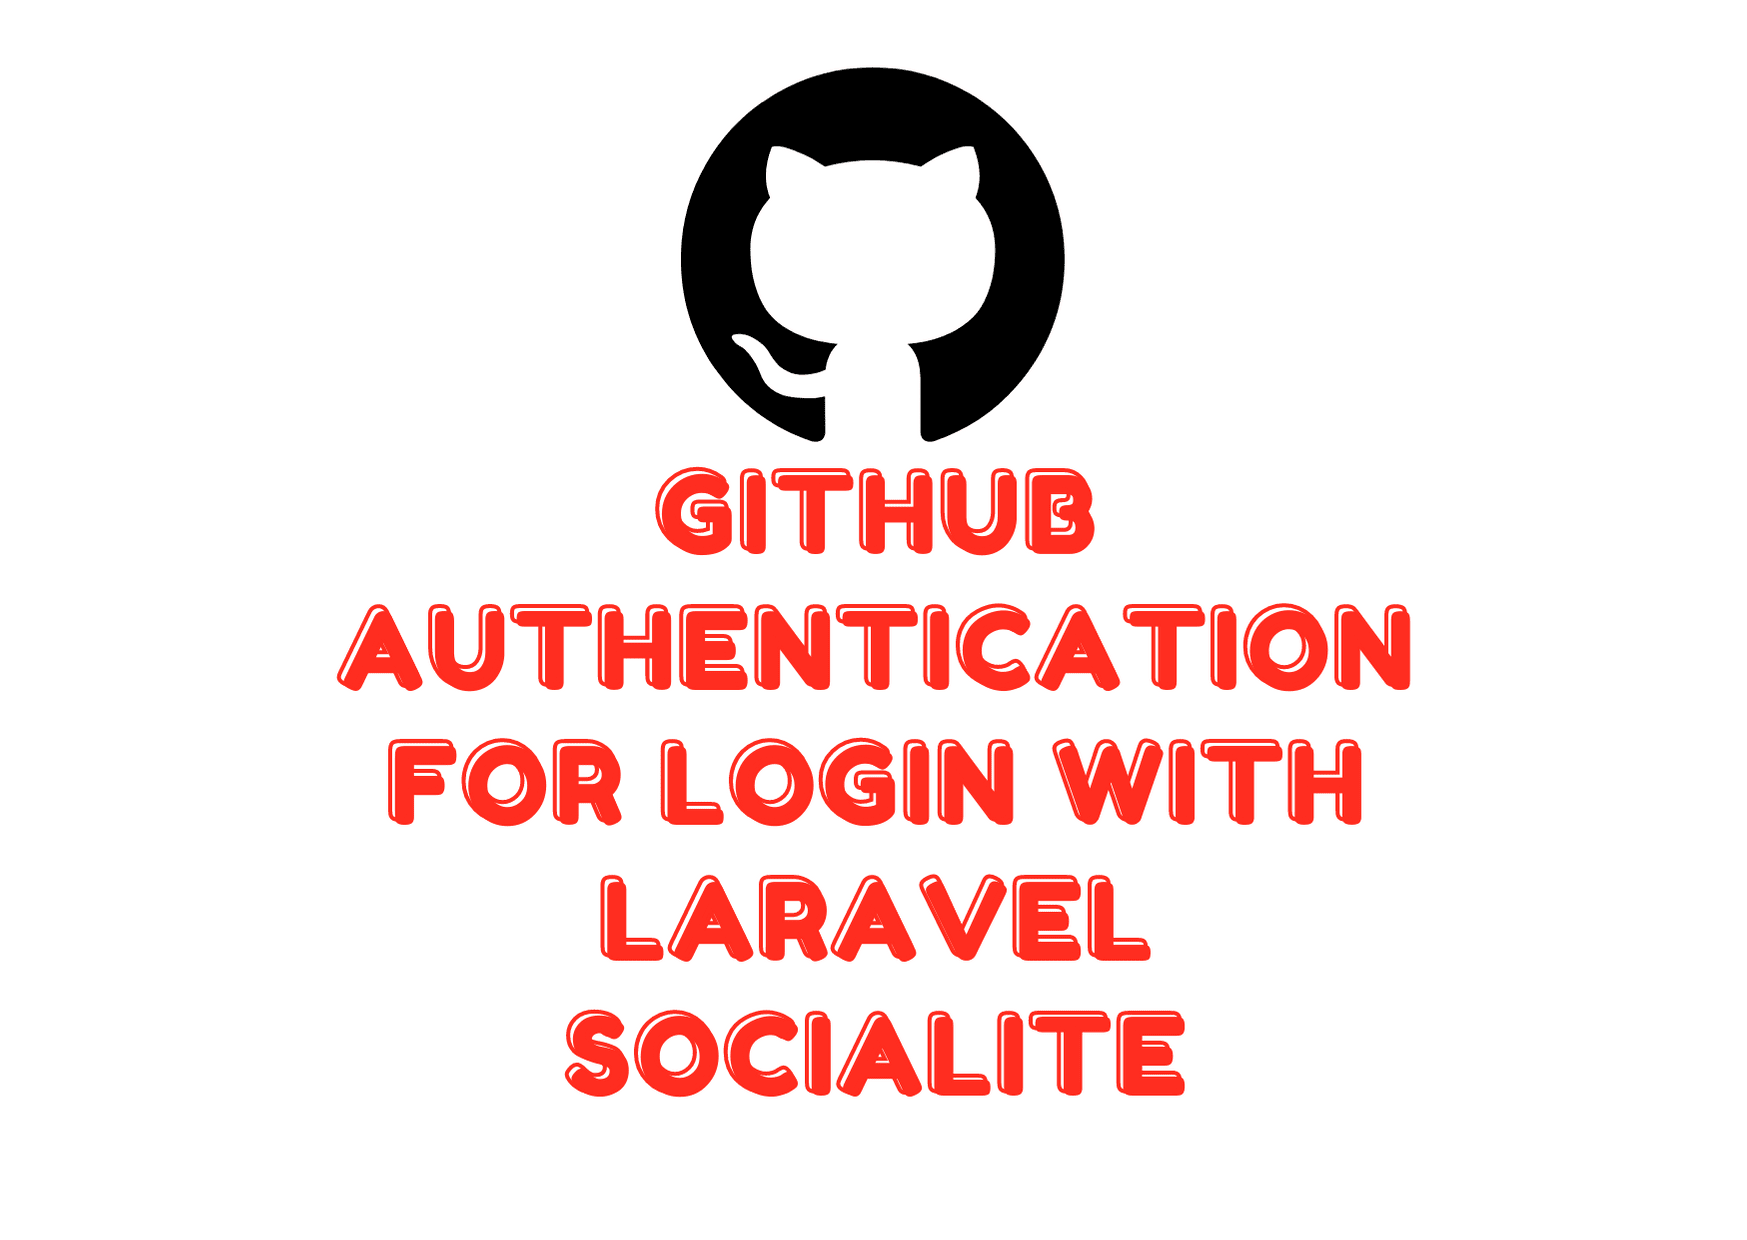 Using Github Authentication for Login with Laravel Socialite